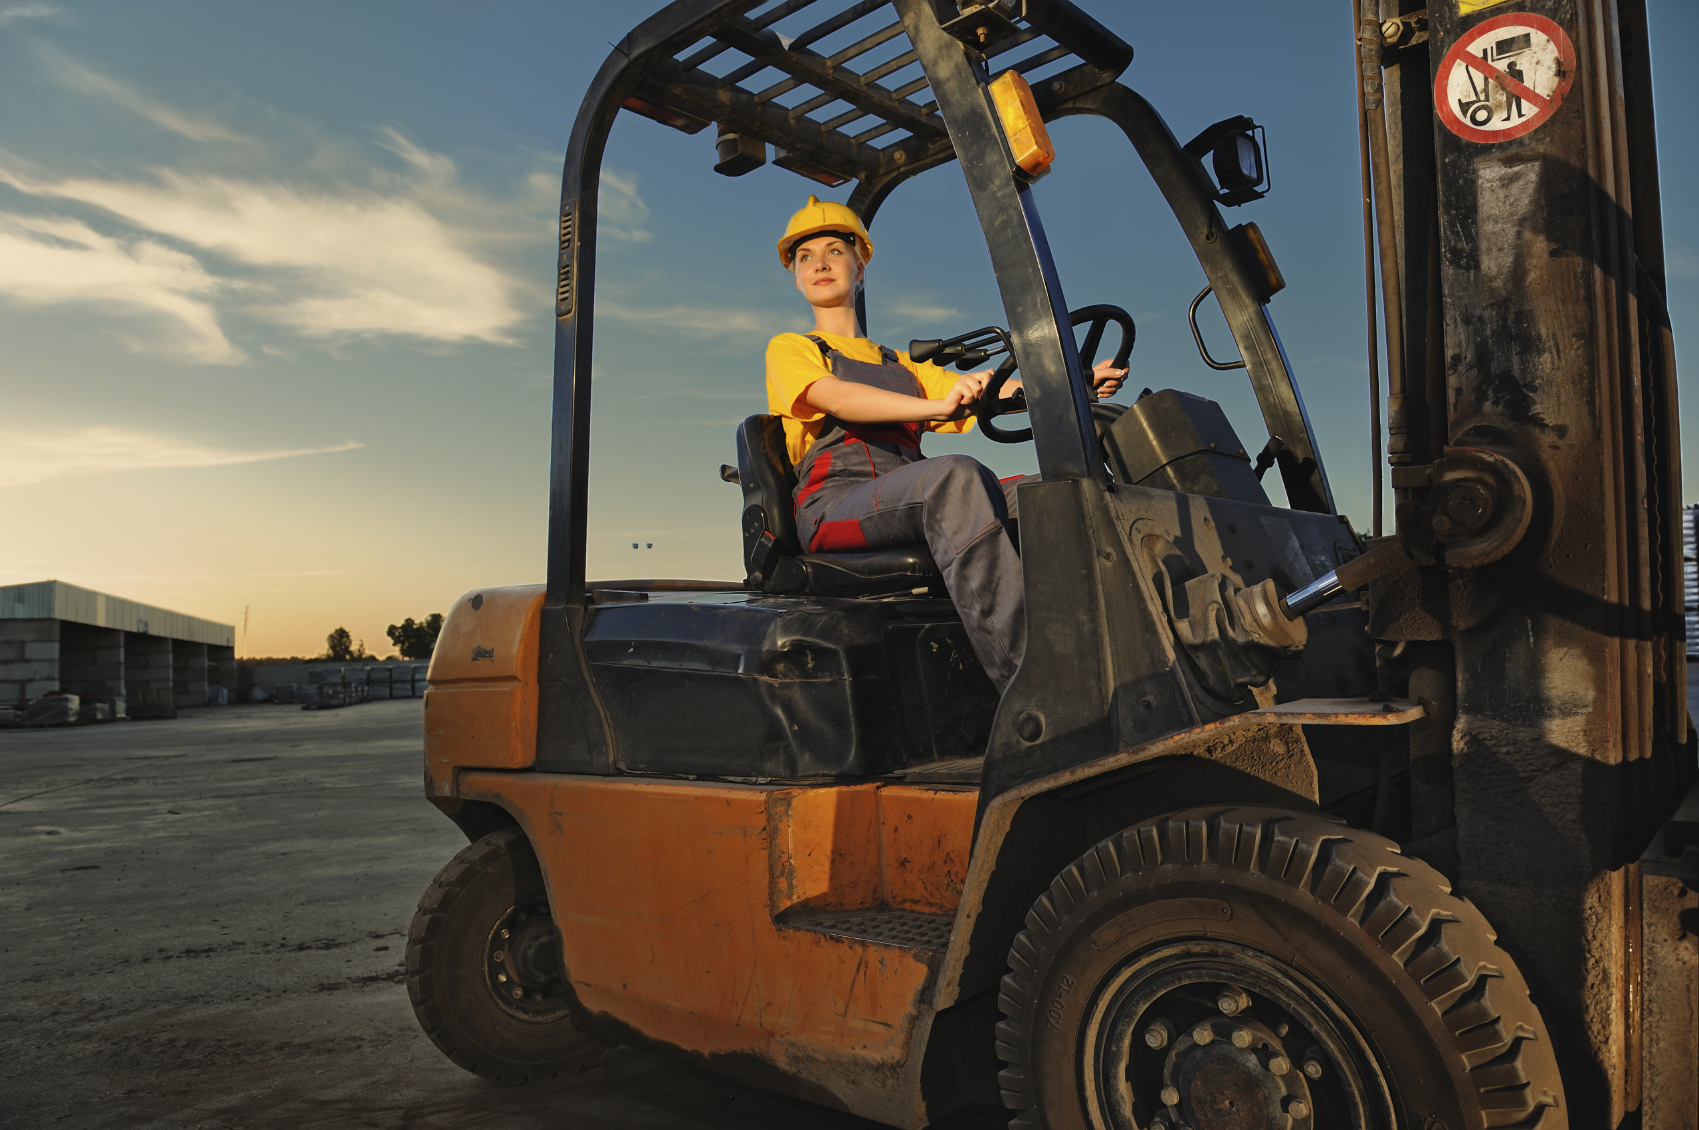 forklift purchasing tips